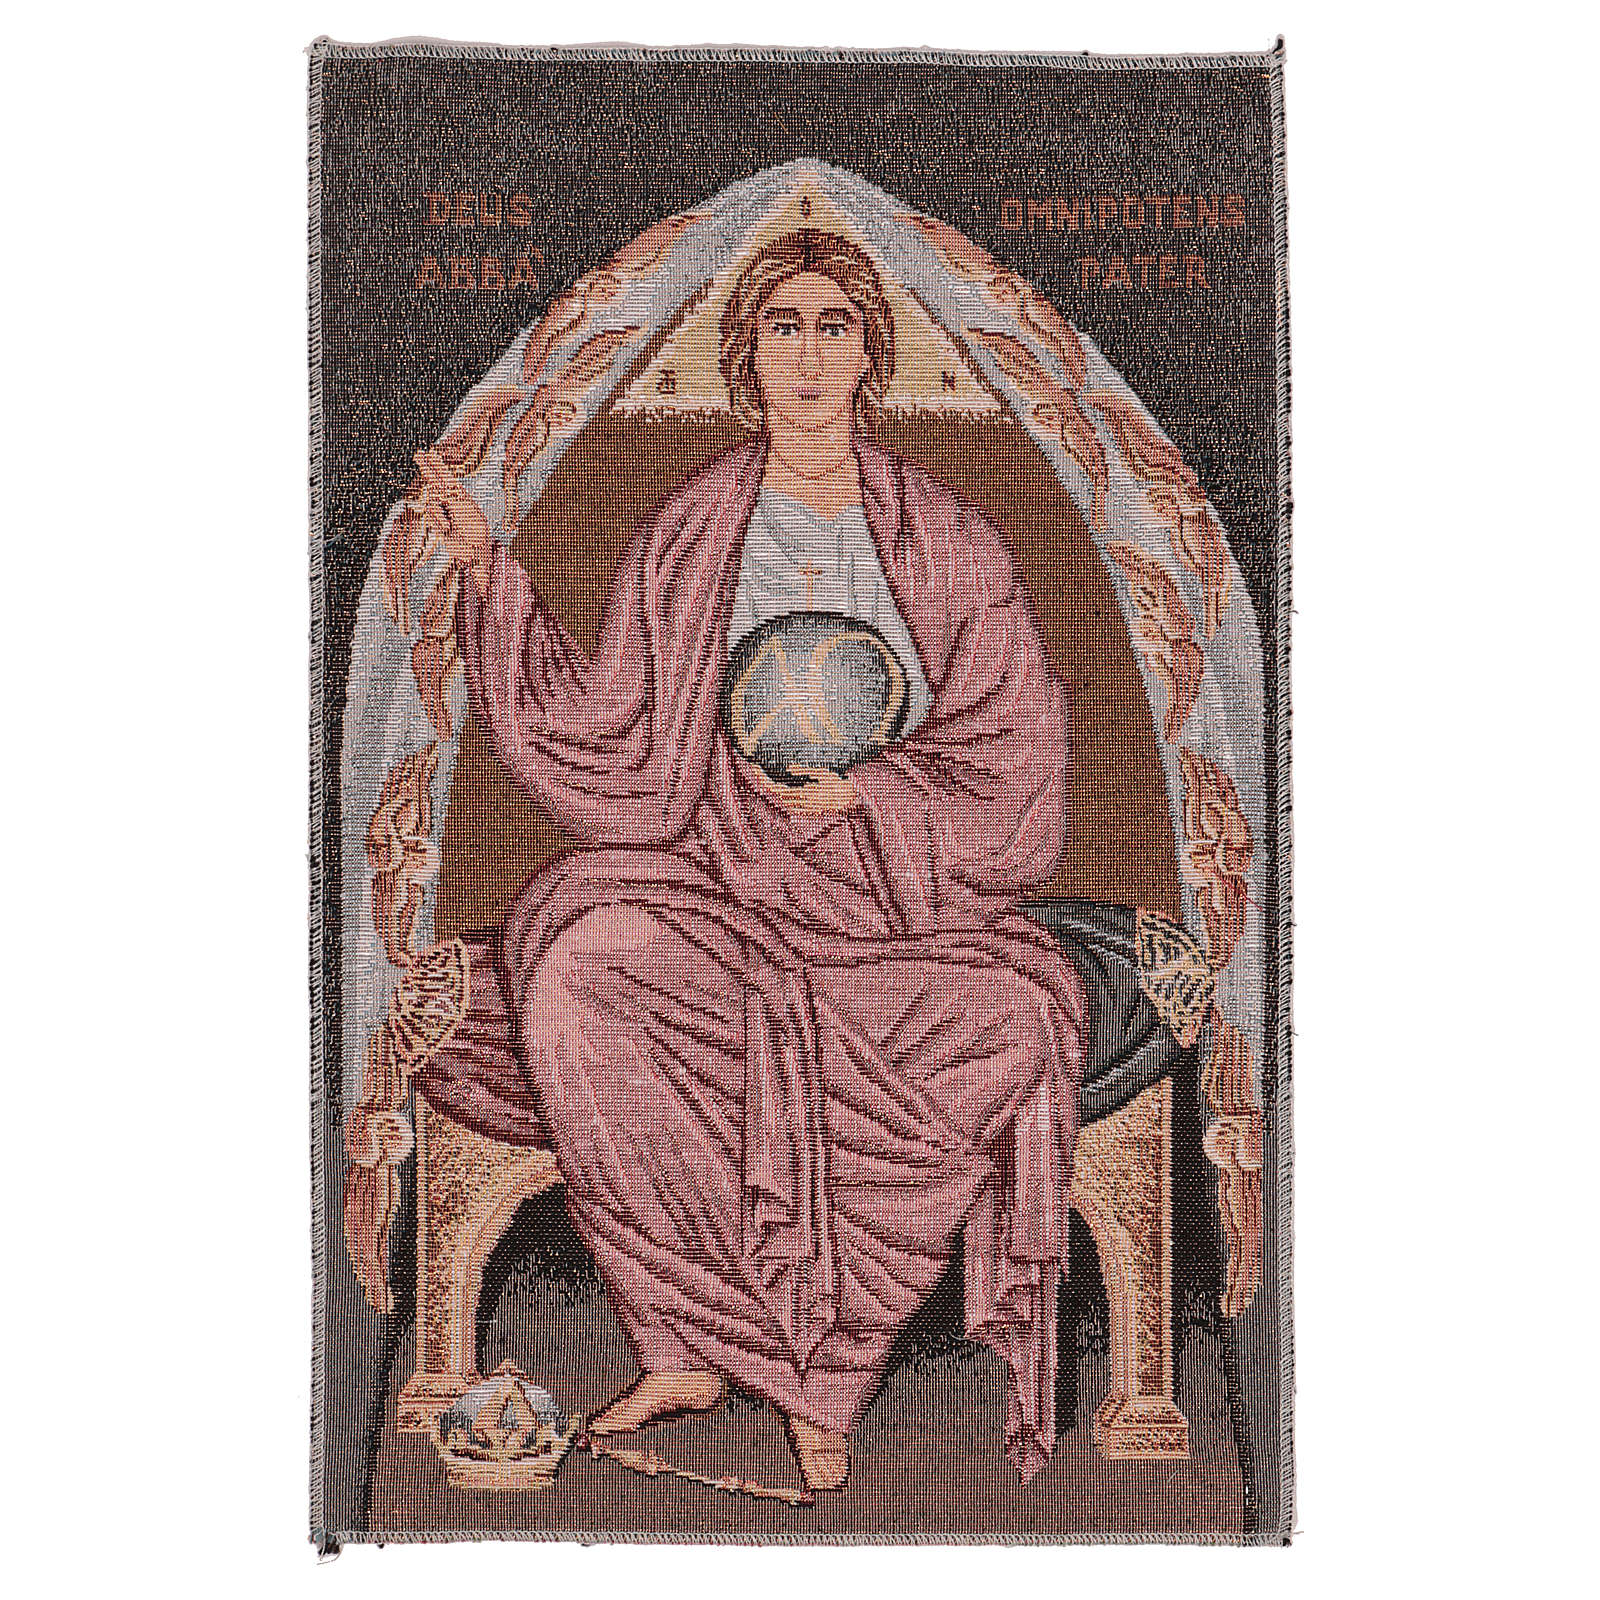 Abba Pater tapestry 40x30 cm 3